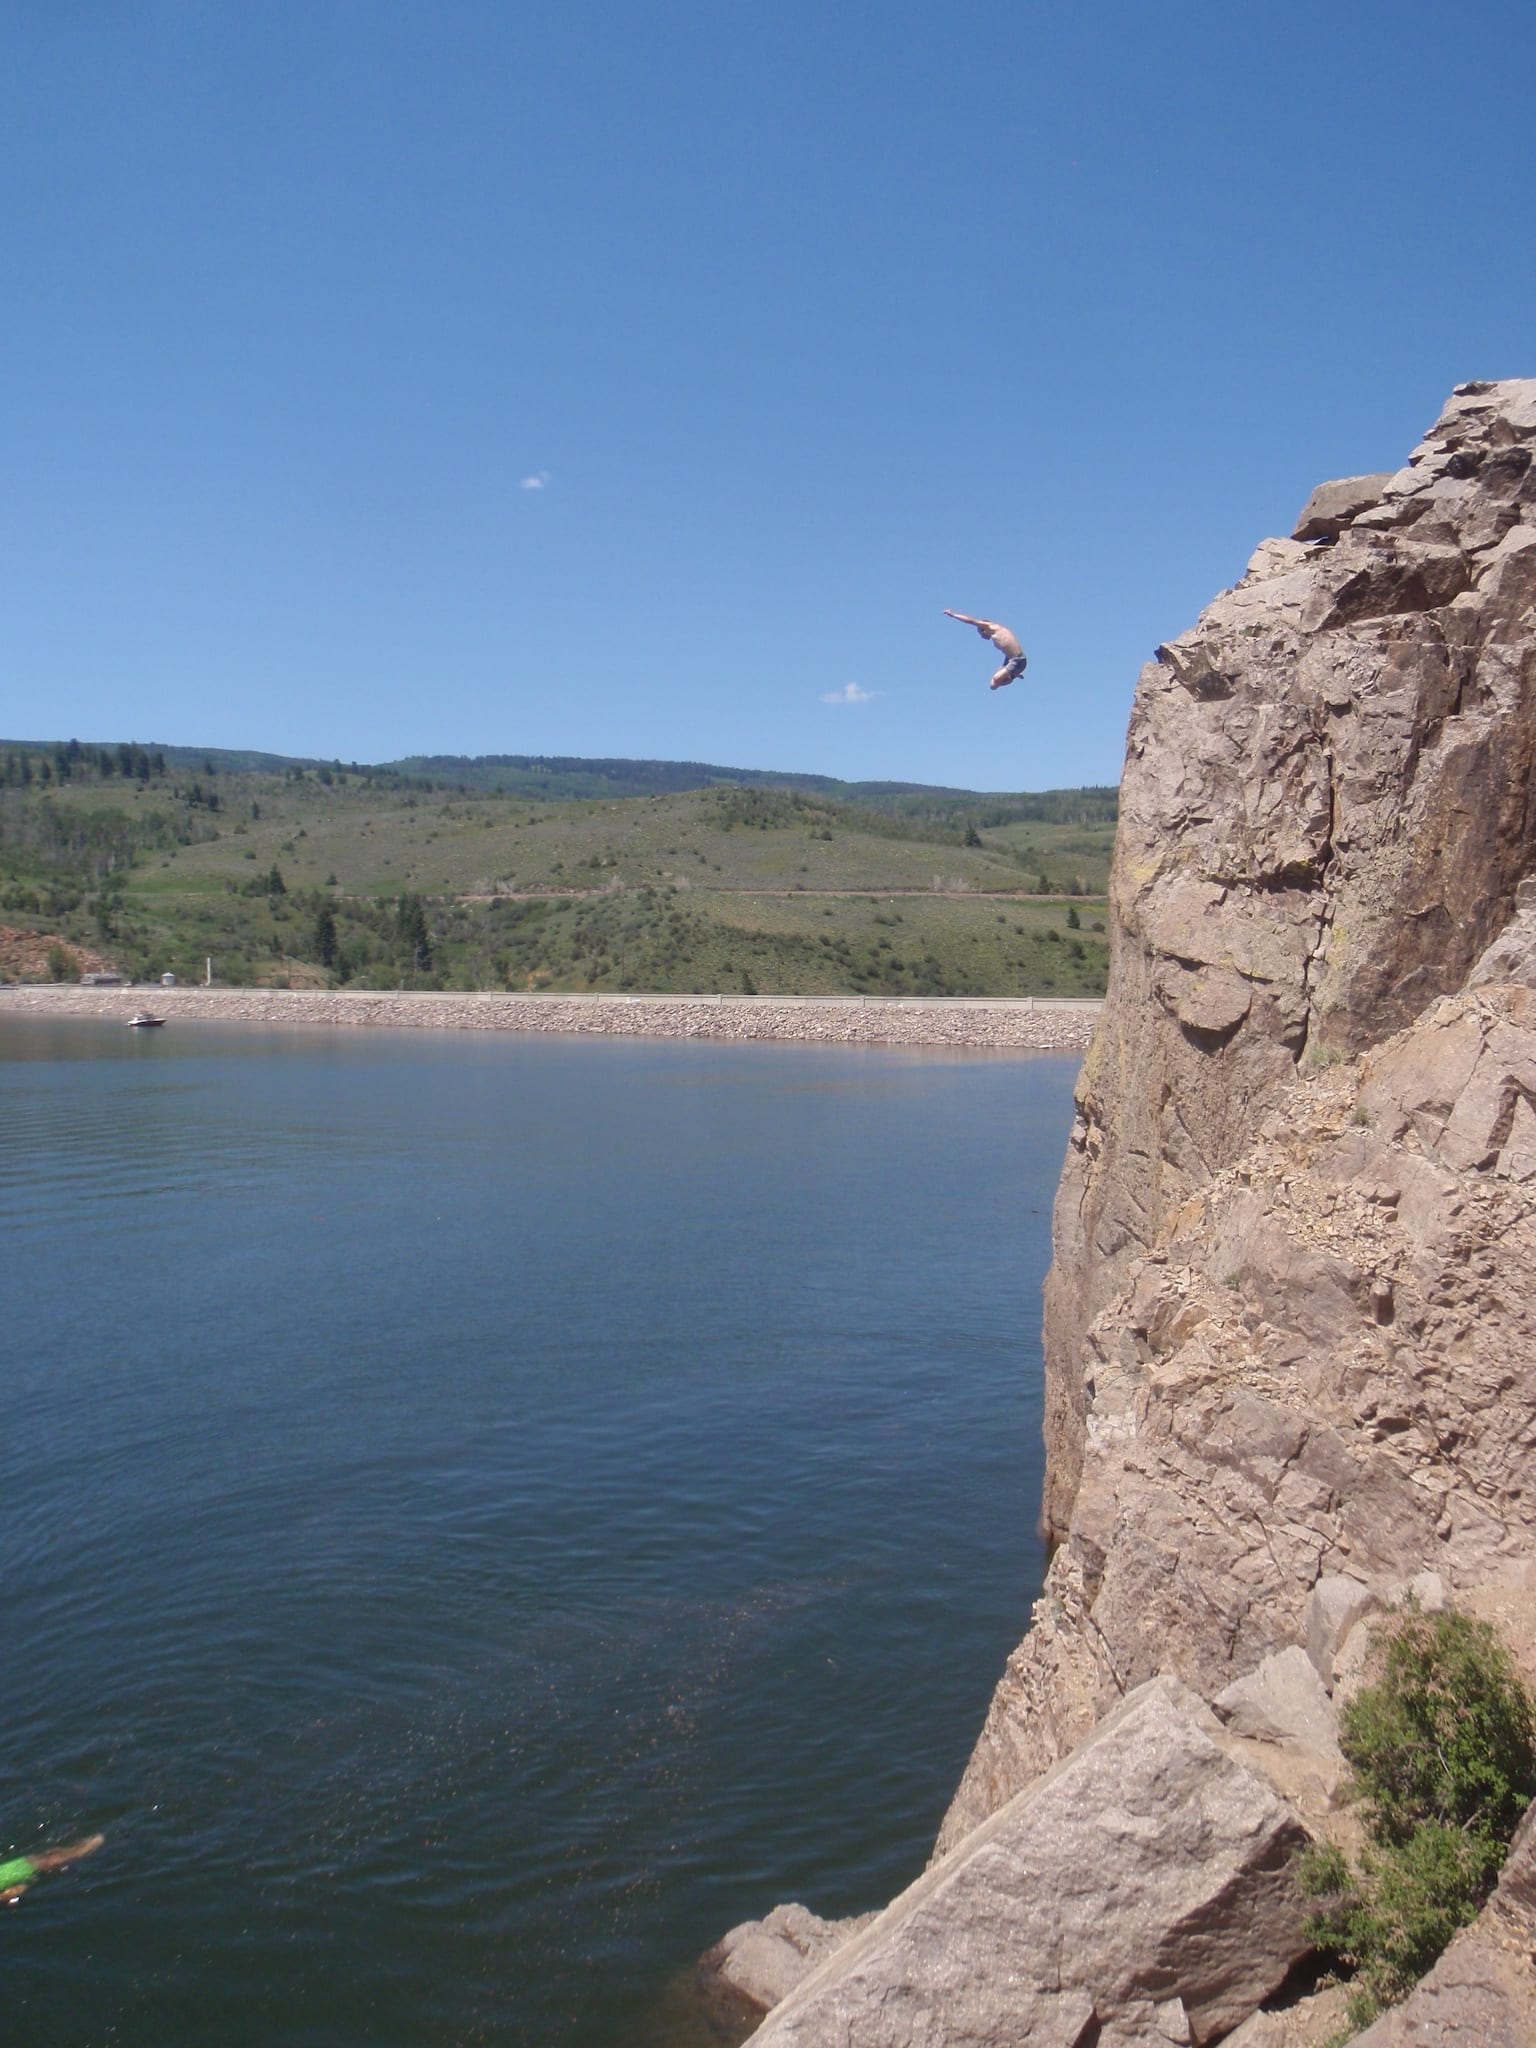 Green Mountain Reservoir Cliff Jumping : green, mountain, reservoir, cliff, jumping, Green, Mountain, Reservoir, Heeney,, Boating,, Camping,, Fishing, Hiking